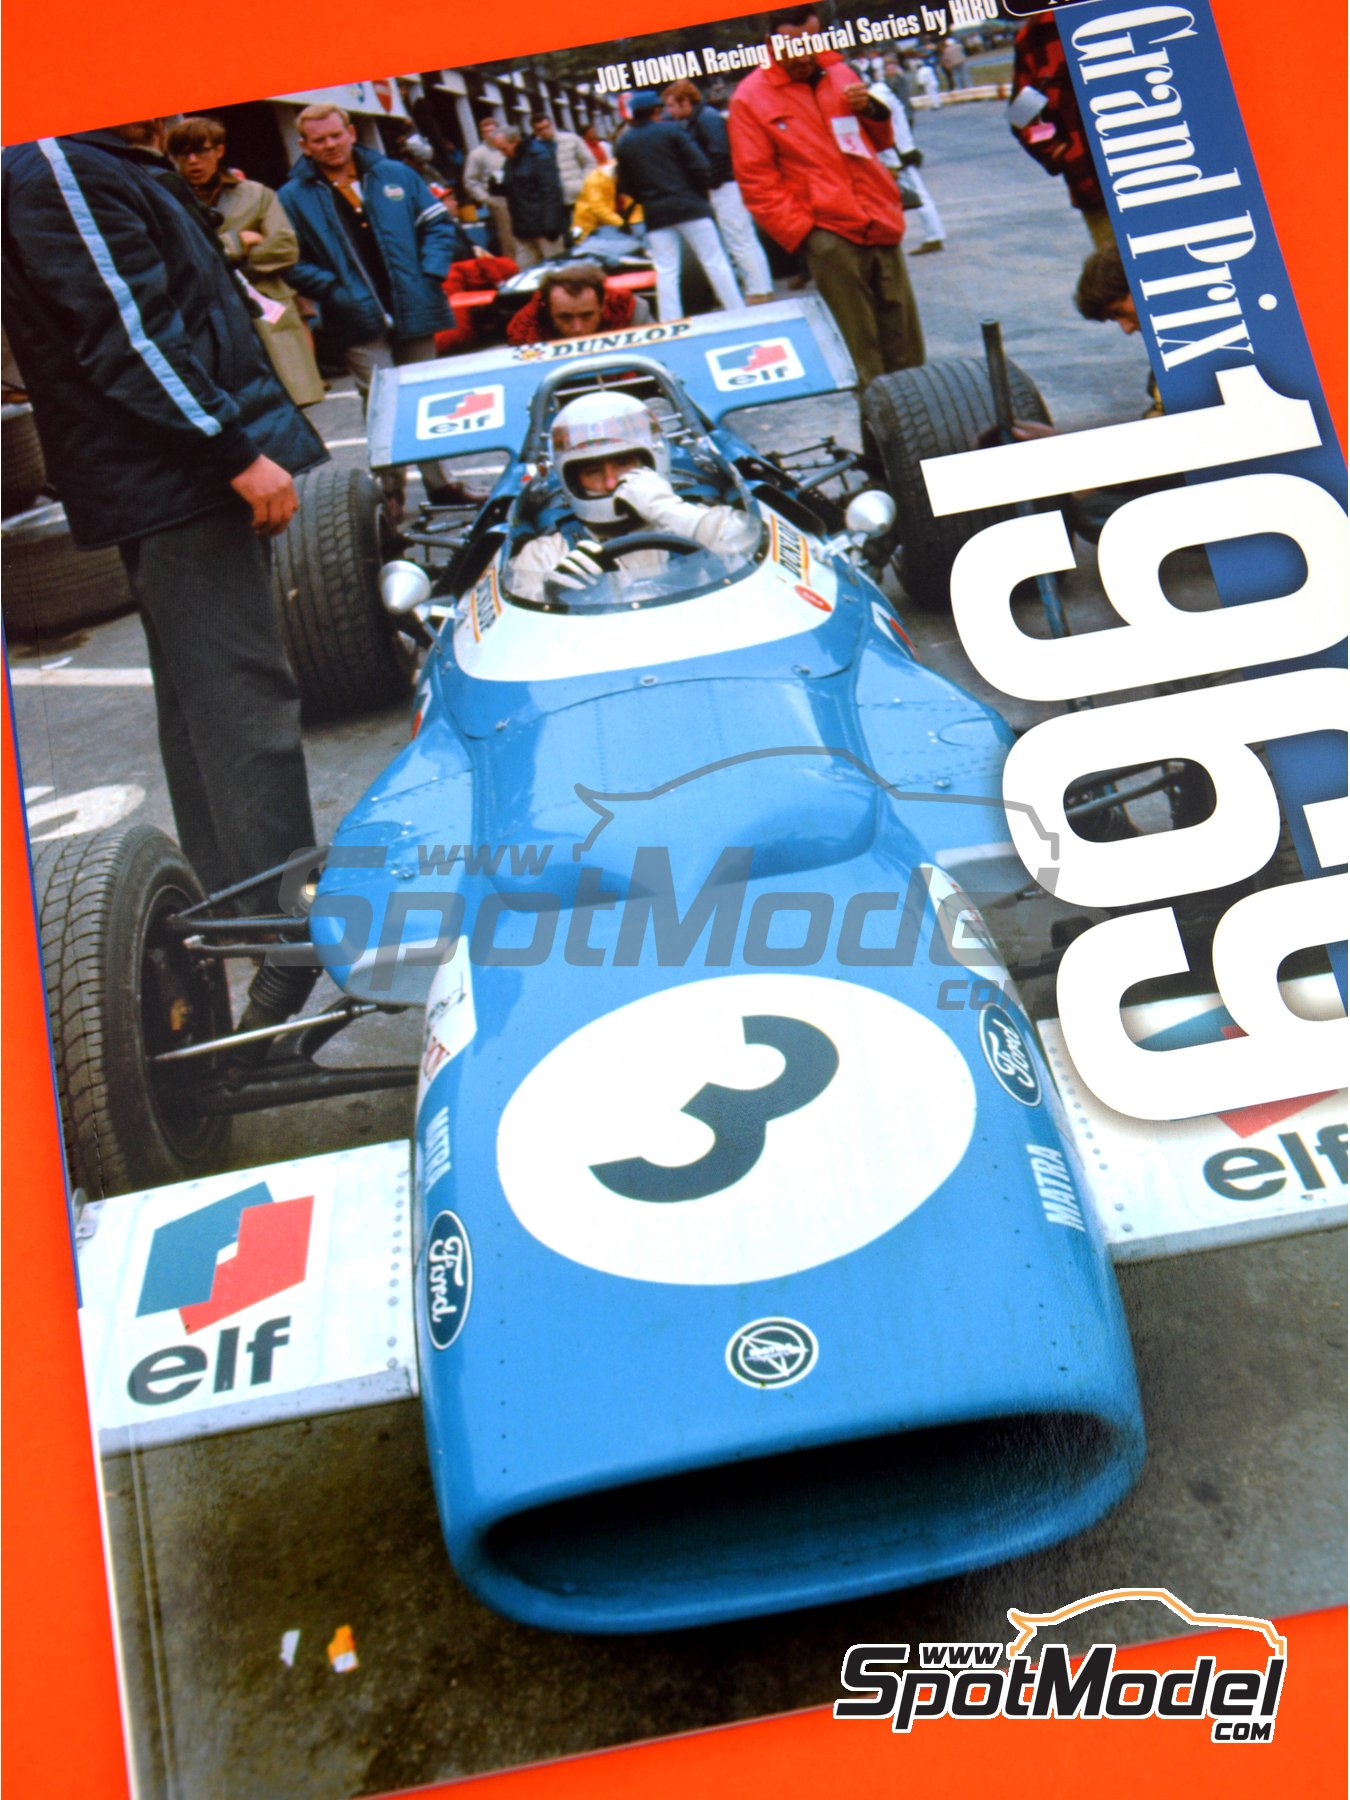 Joe Honda Racing Pictorial Series: Grand Prix - FIA Formula 1 World Championship 1969 | Reference / walkaround book manufactured by Model Factory Hiro (ref. MFH-JH41) image